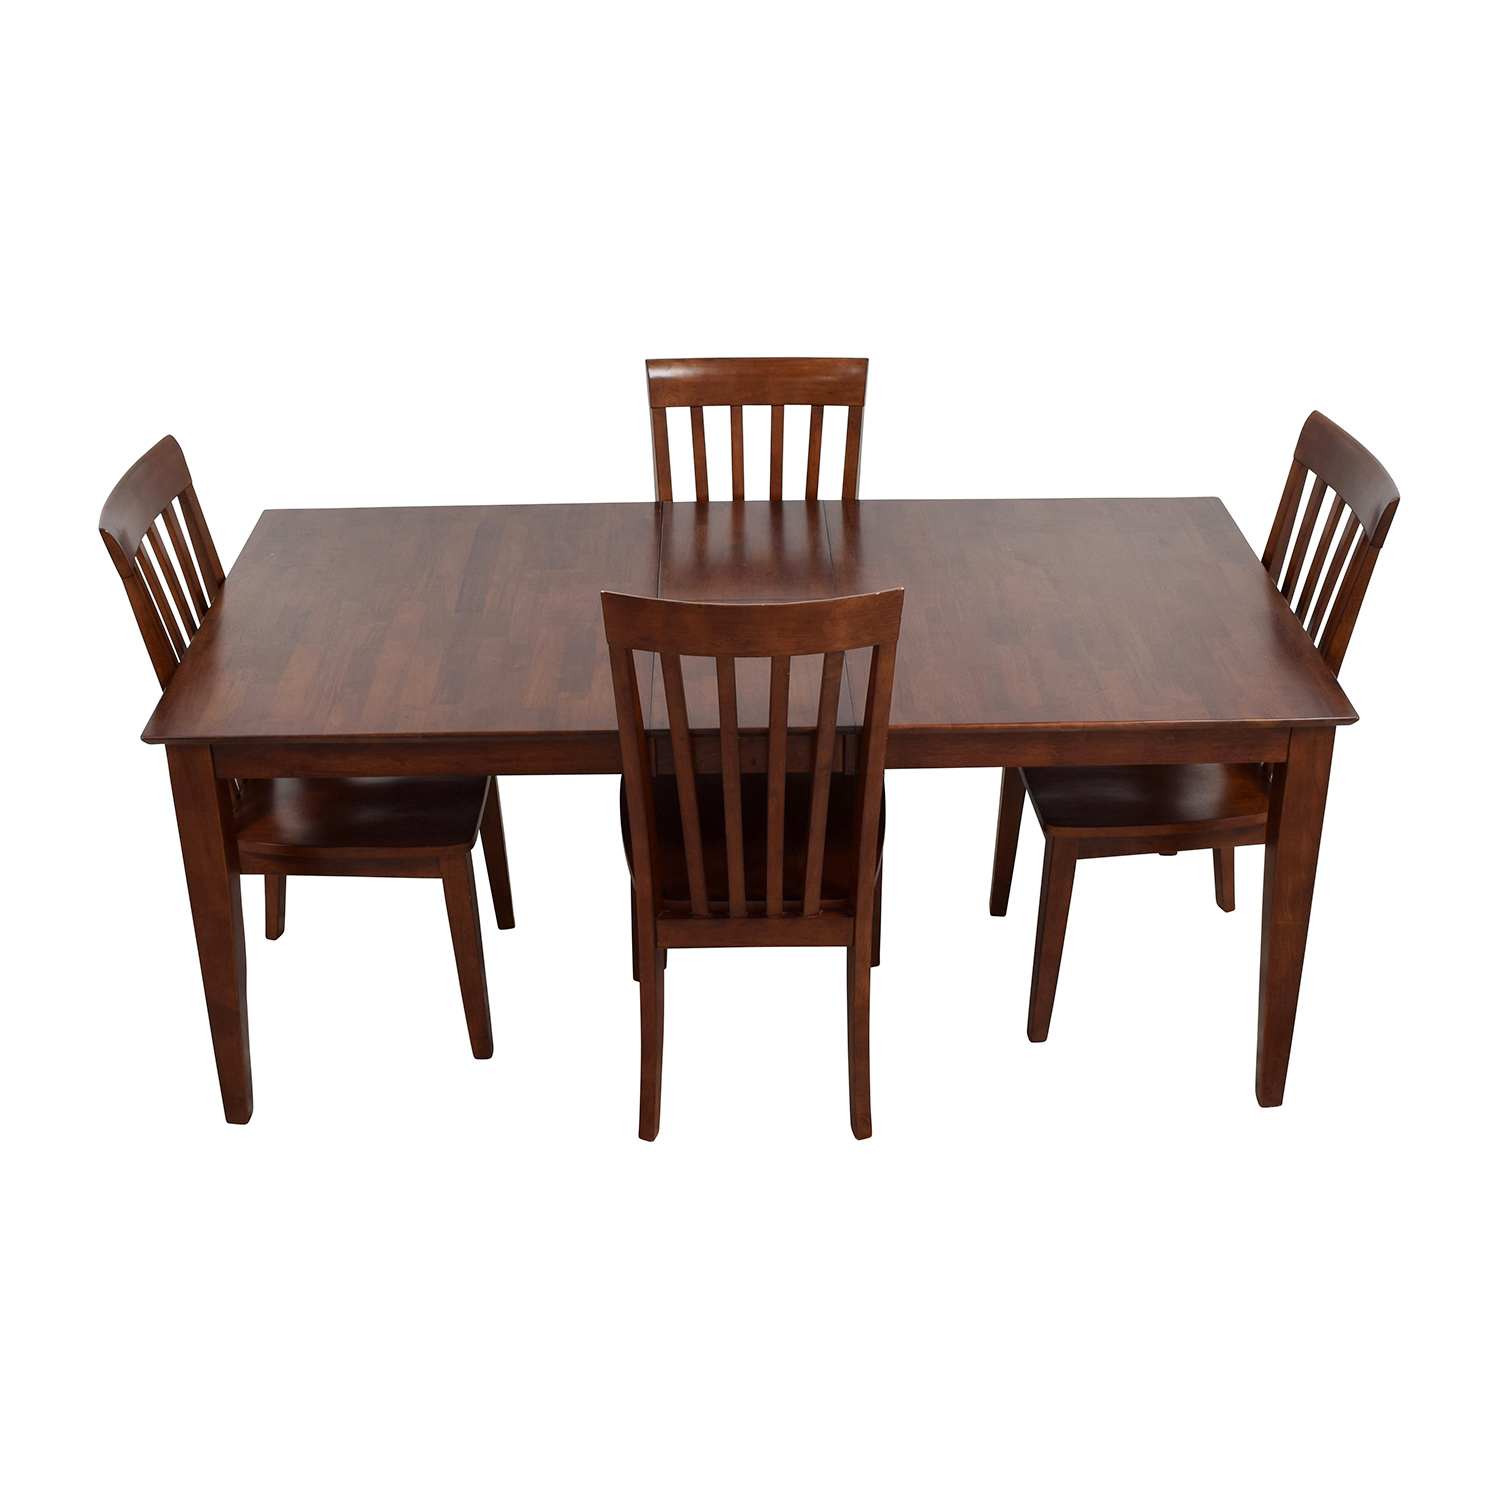 45 Off Boston Interiors Boston Interiors Tuscany Dining Set Tables